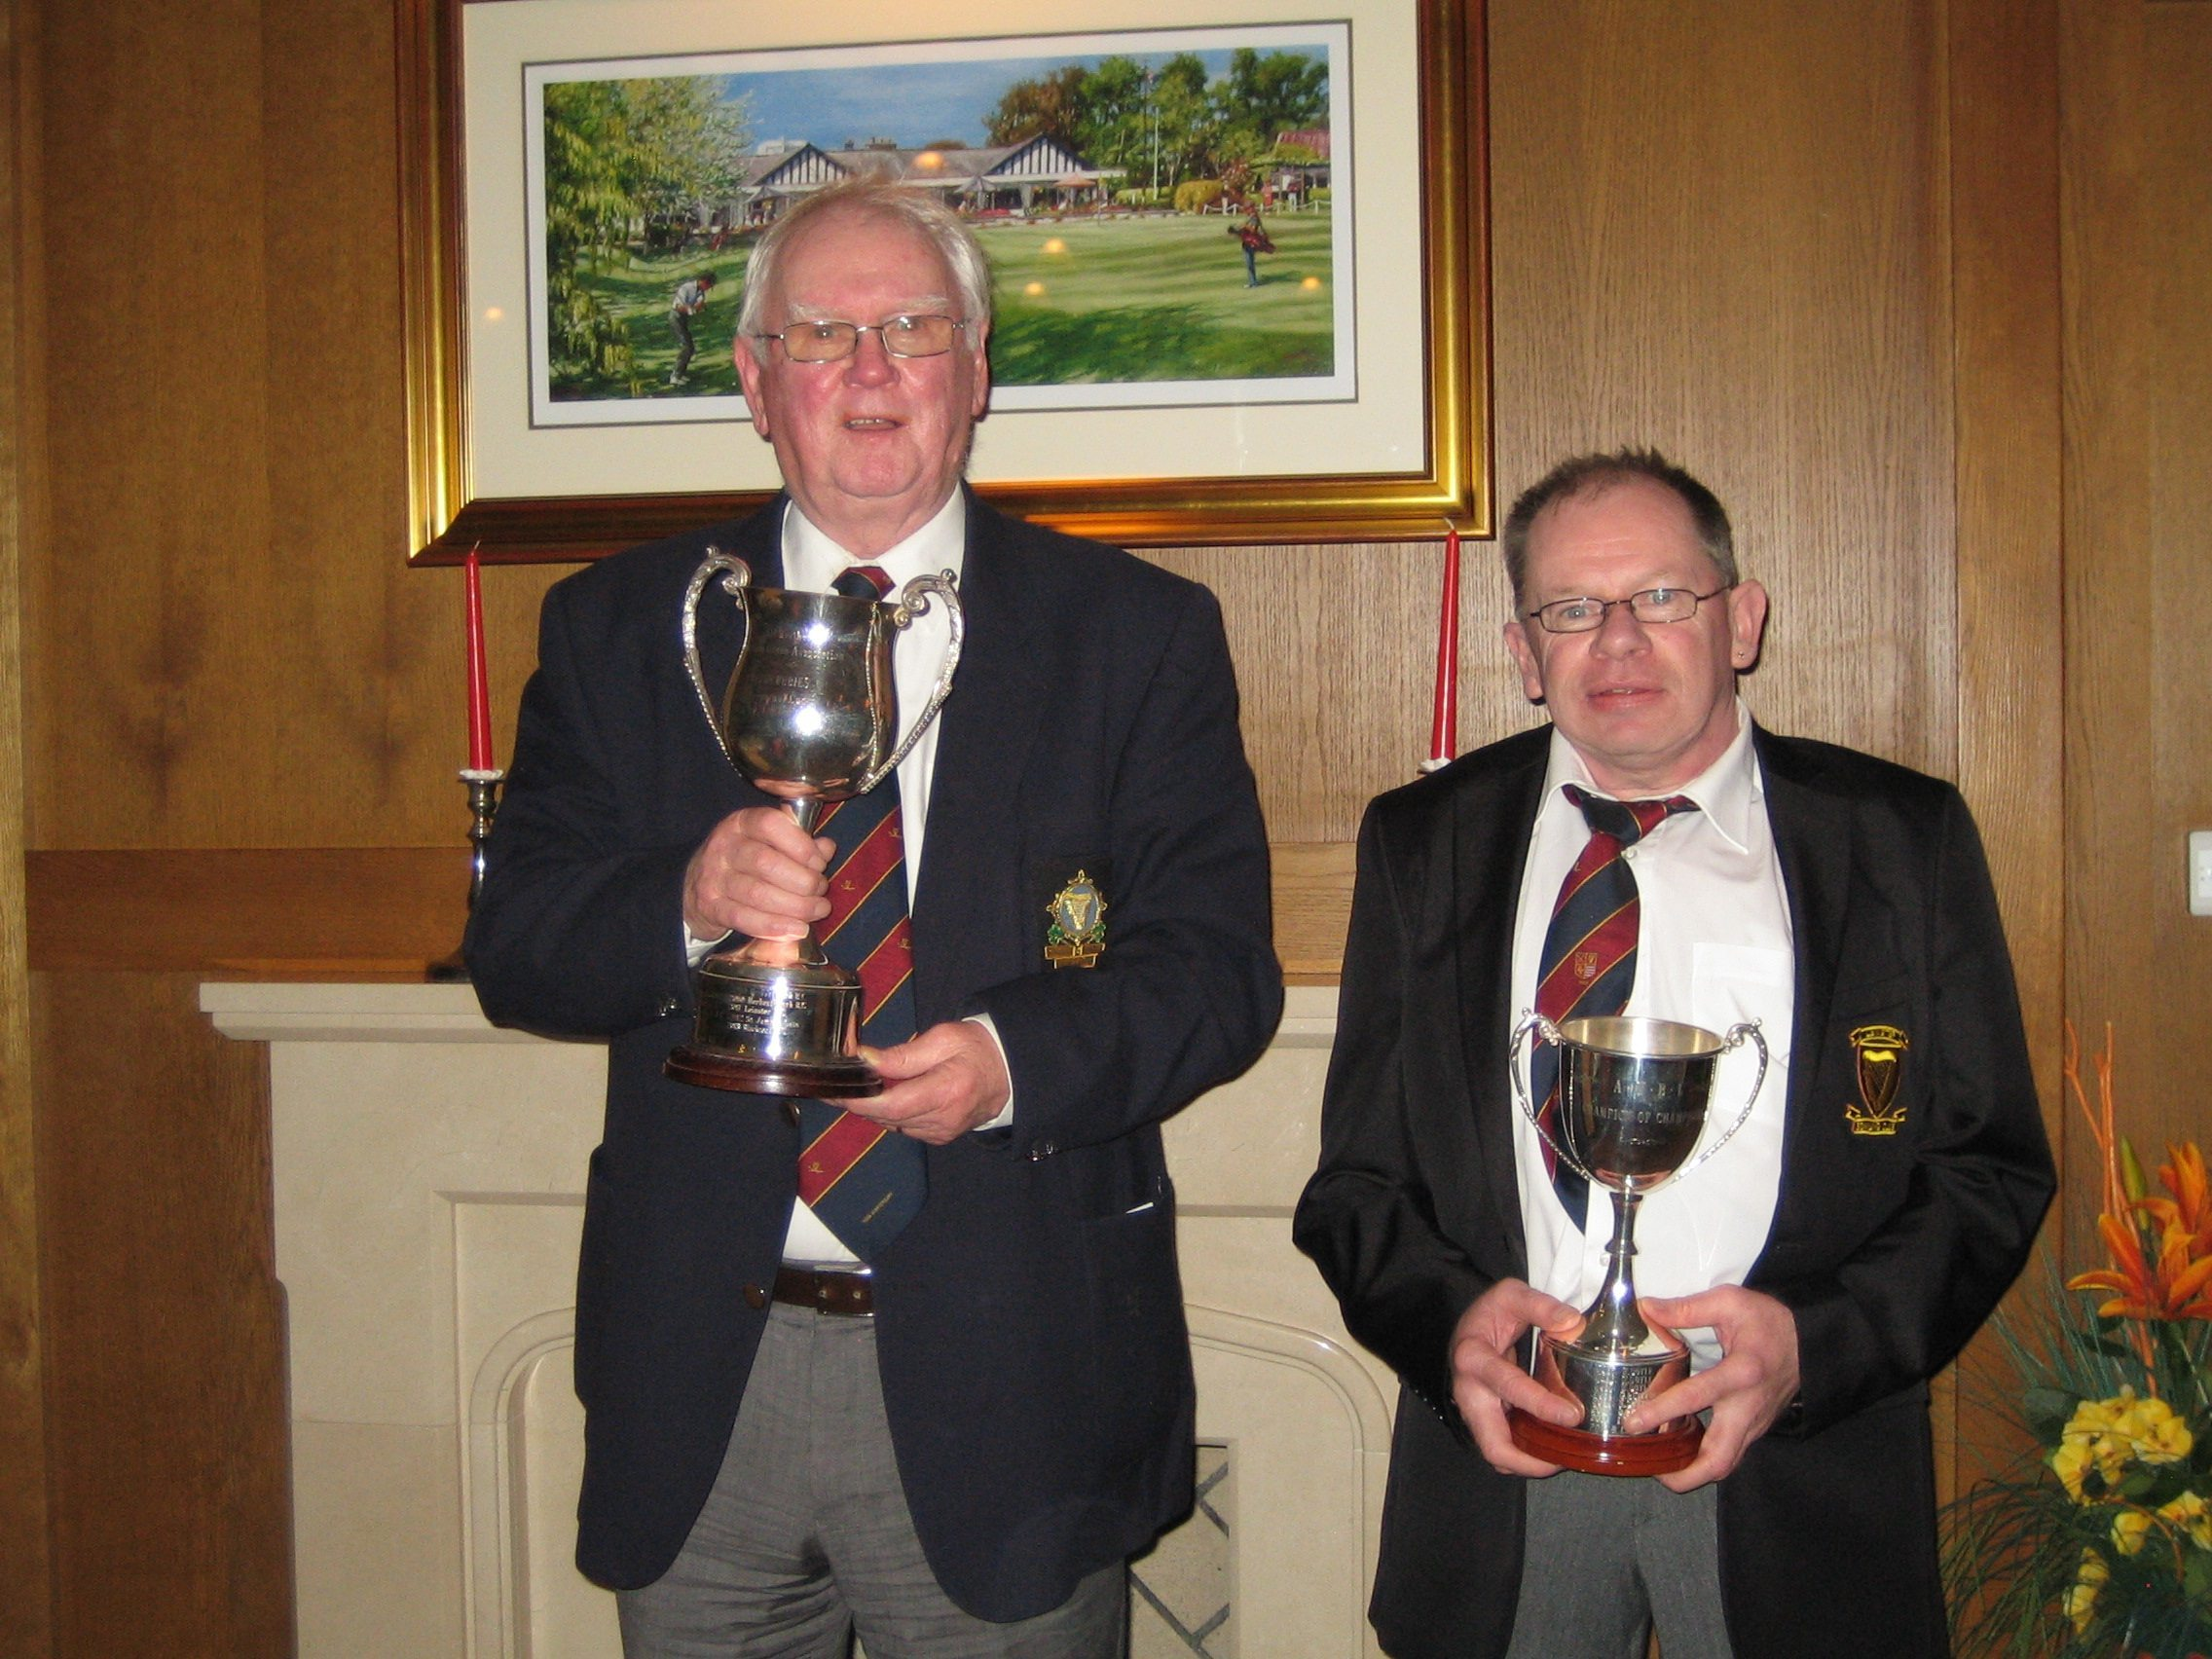 Leinster Bowling Club Winter League and Champion of Champions